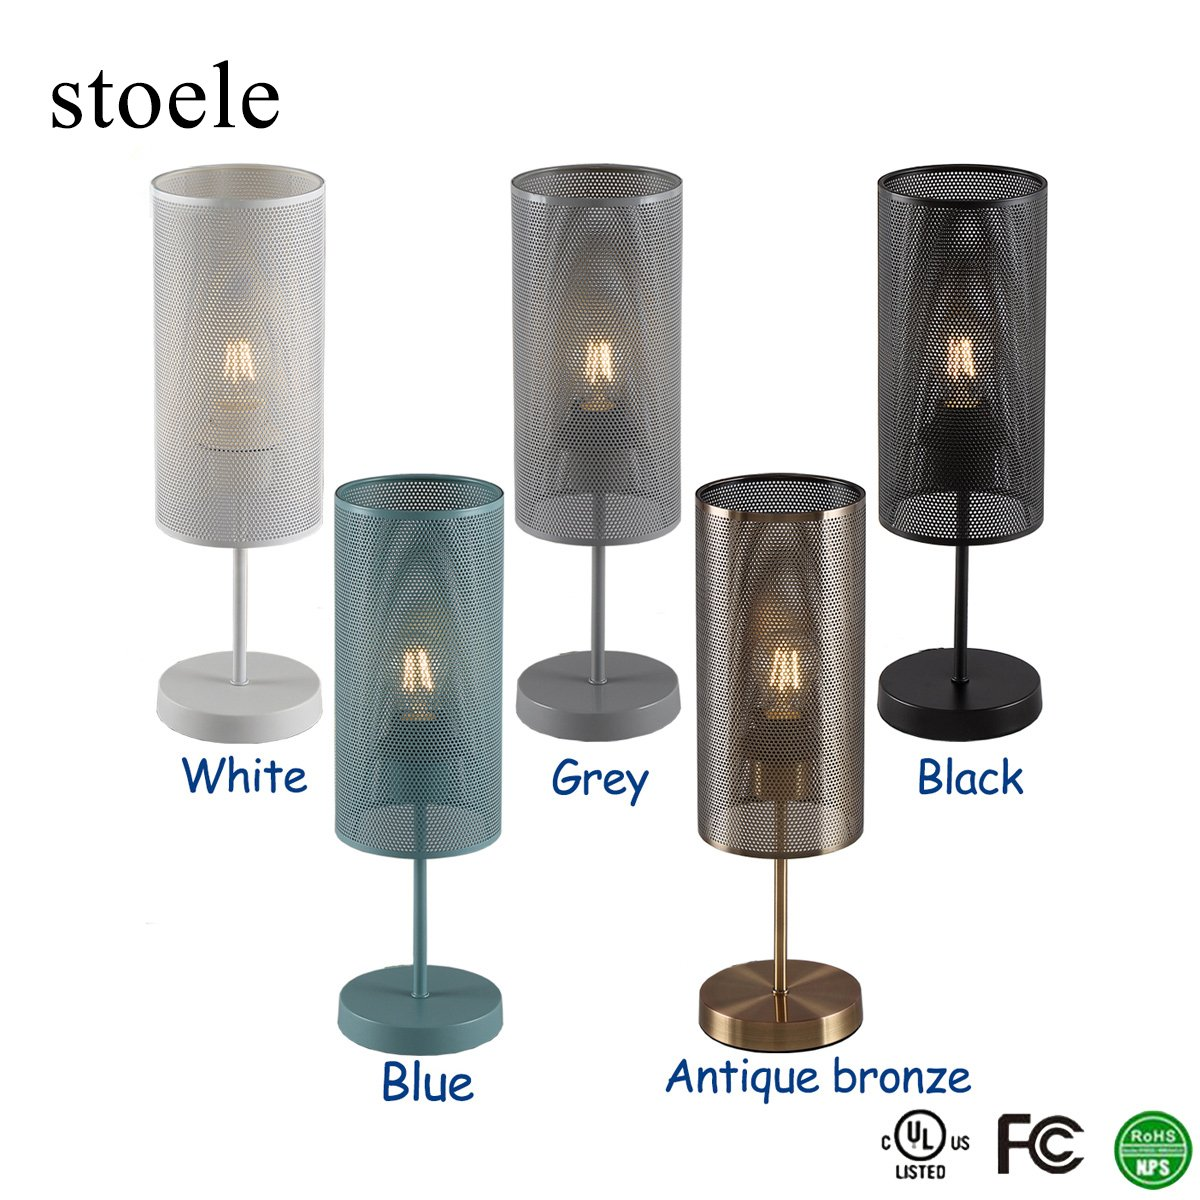 stoele T0215 Table Lamp Desk Light Decorative for Bedroom Living Dining Room Coffee Shop Bookcase Dresser Modern Style 6W LED Bulb Included(Gray) by STOELE